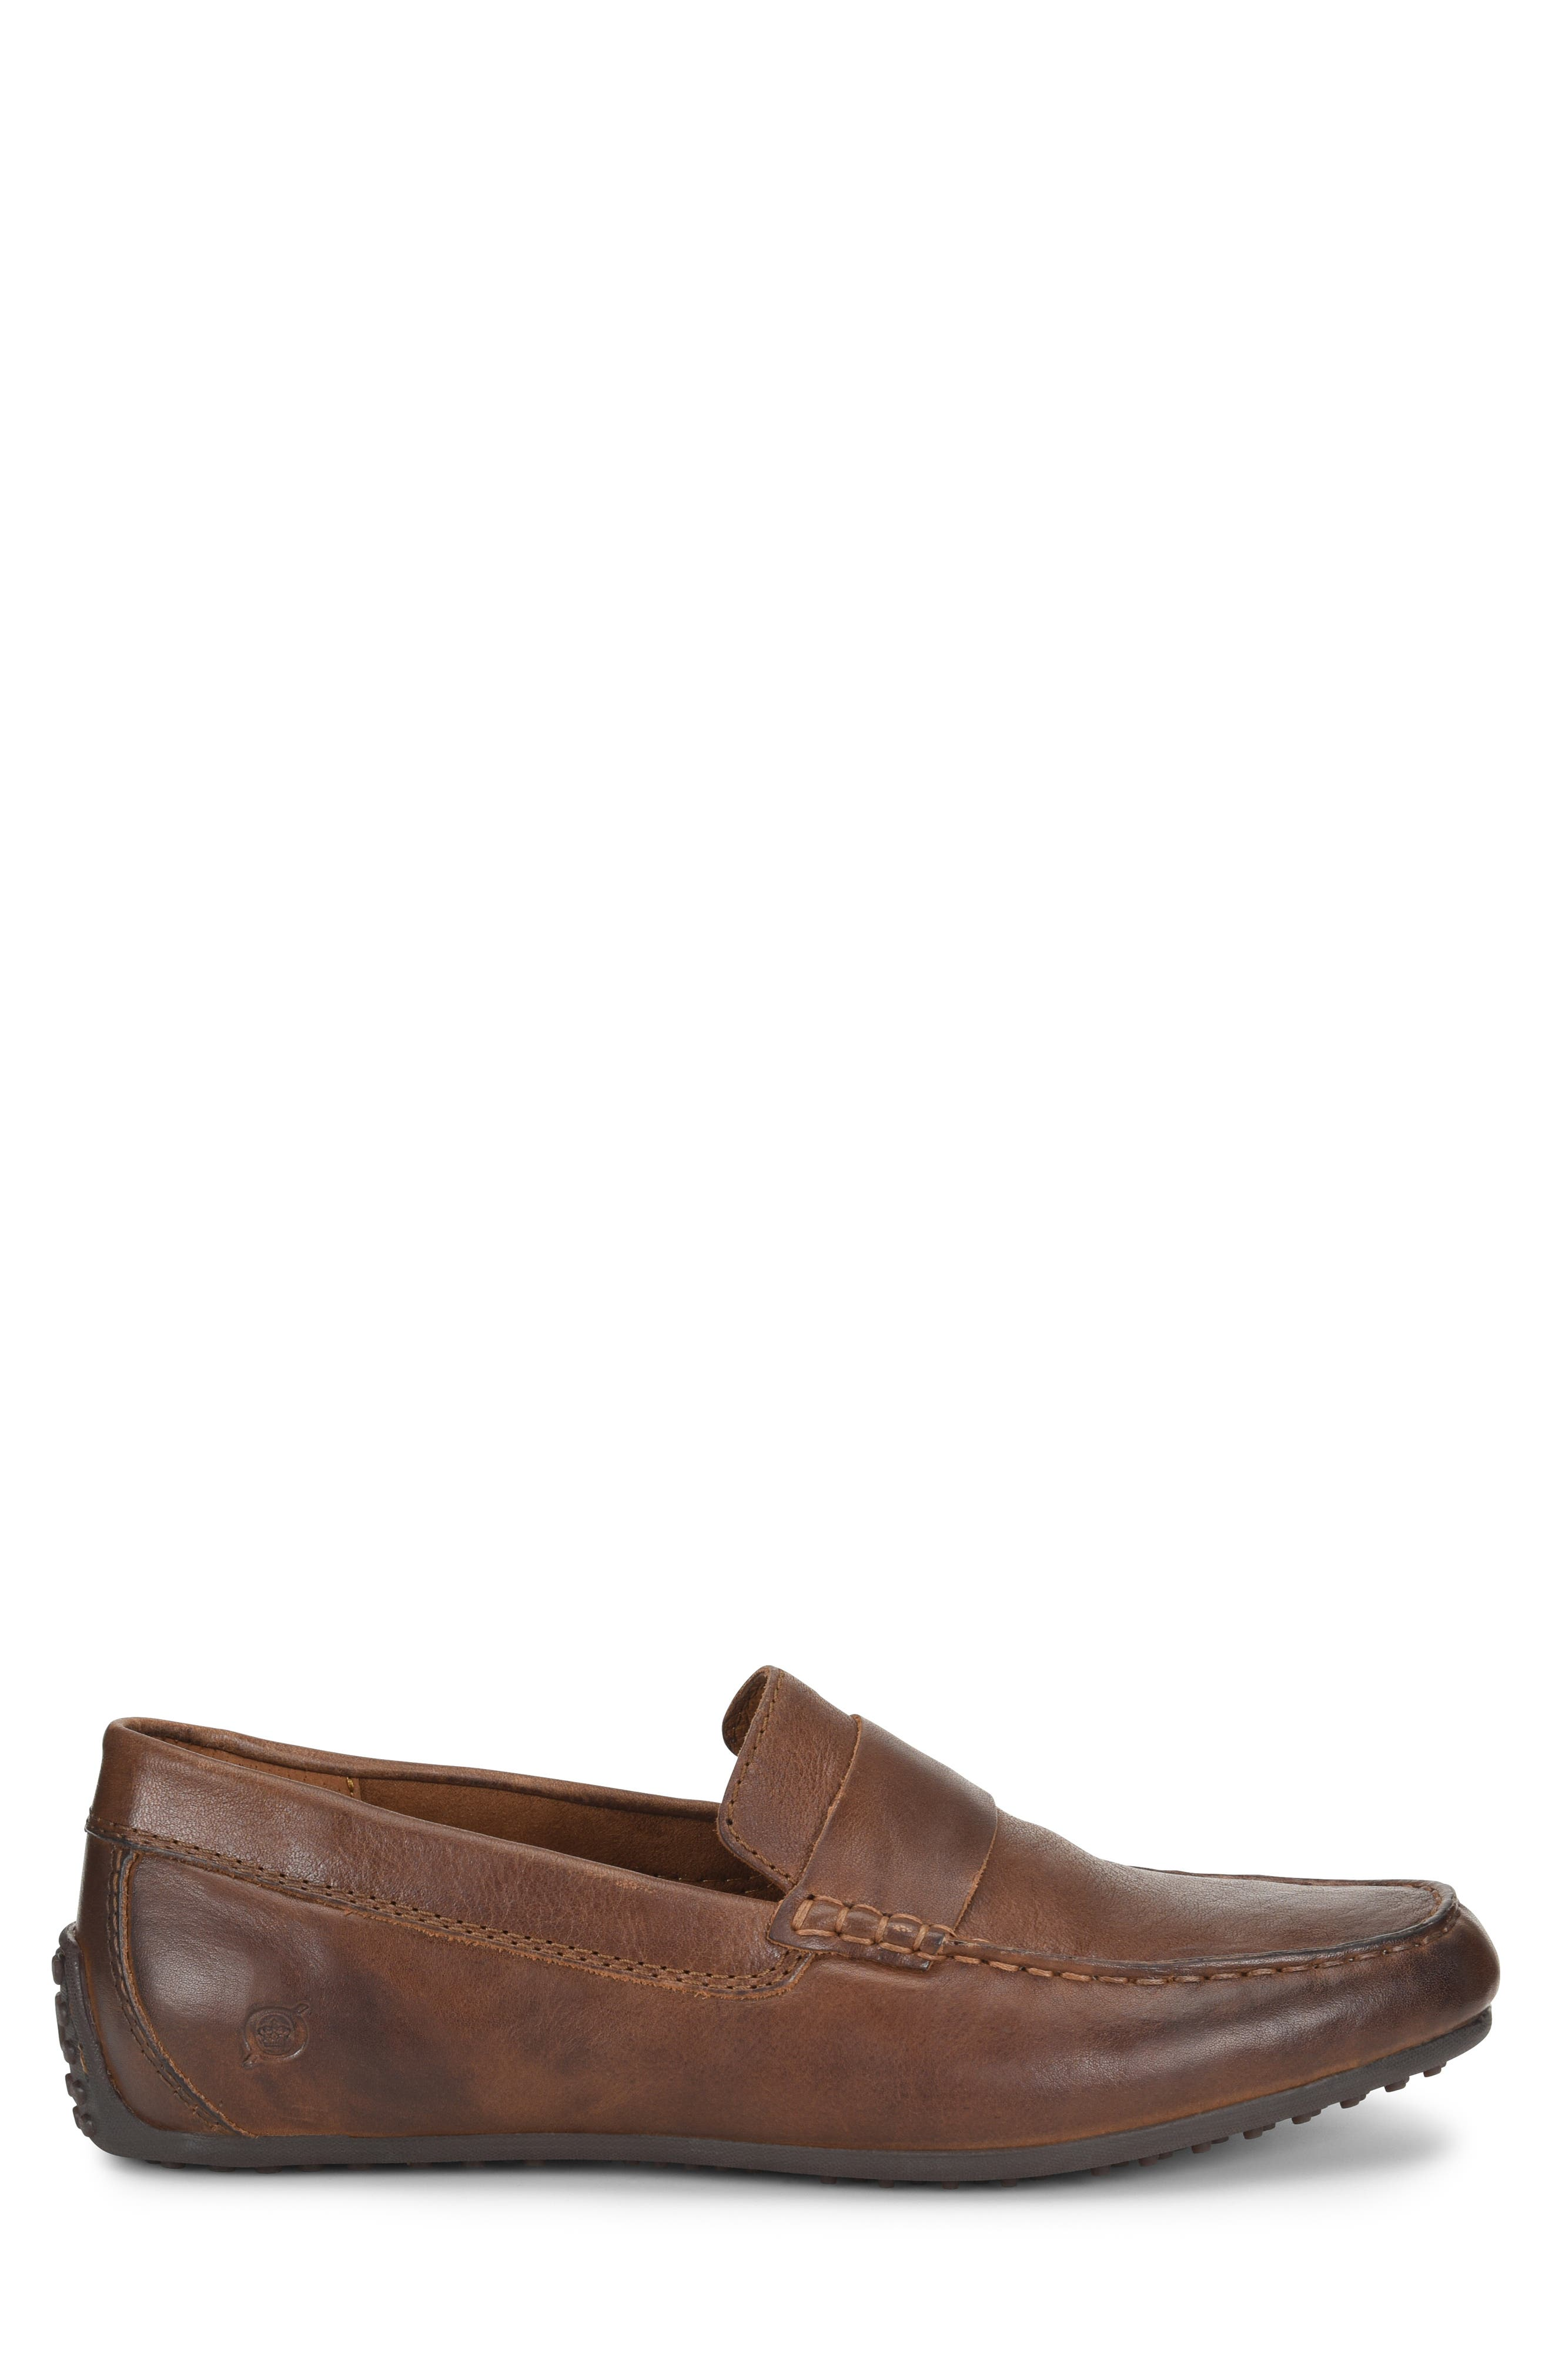 Ratner Driving Loafer,                             Alternate thumbnail 3, color,                             BROWN LEATHER